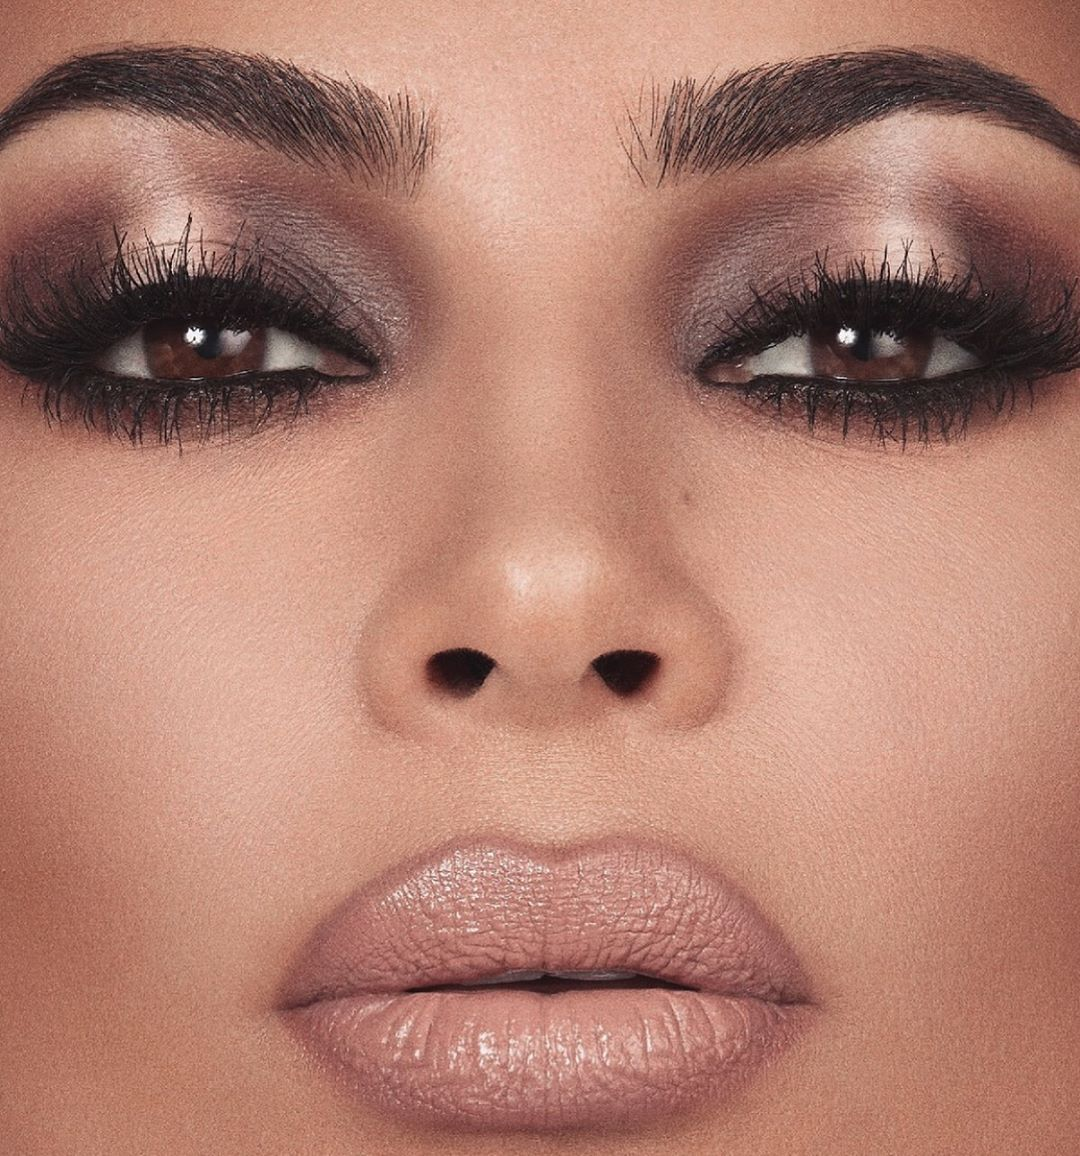 Pin By Taylor Moreno On Kim Kardashian Smokey Eye Makeup Eye Makeup Kim Kardashian Makeup